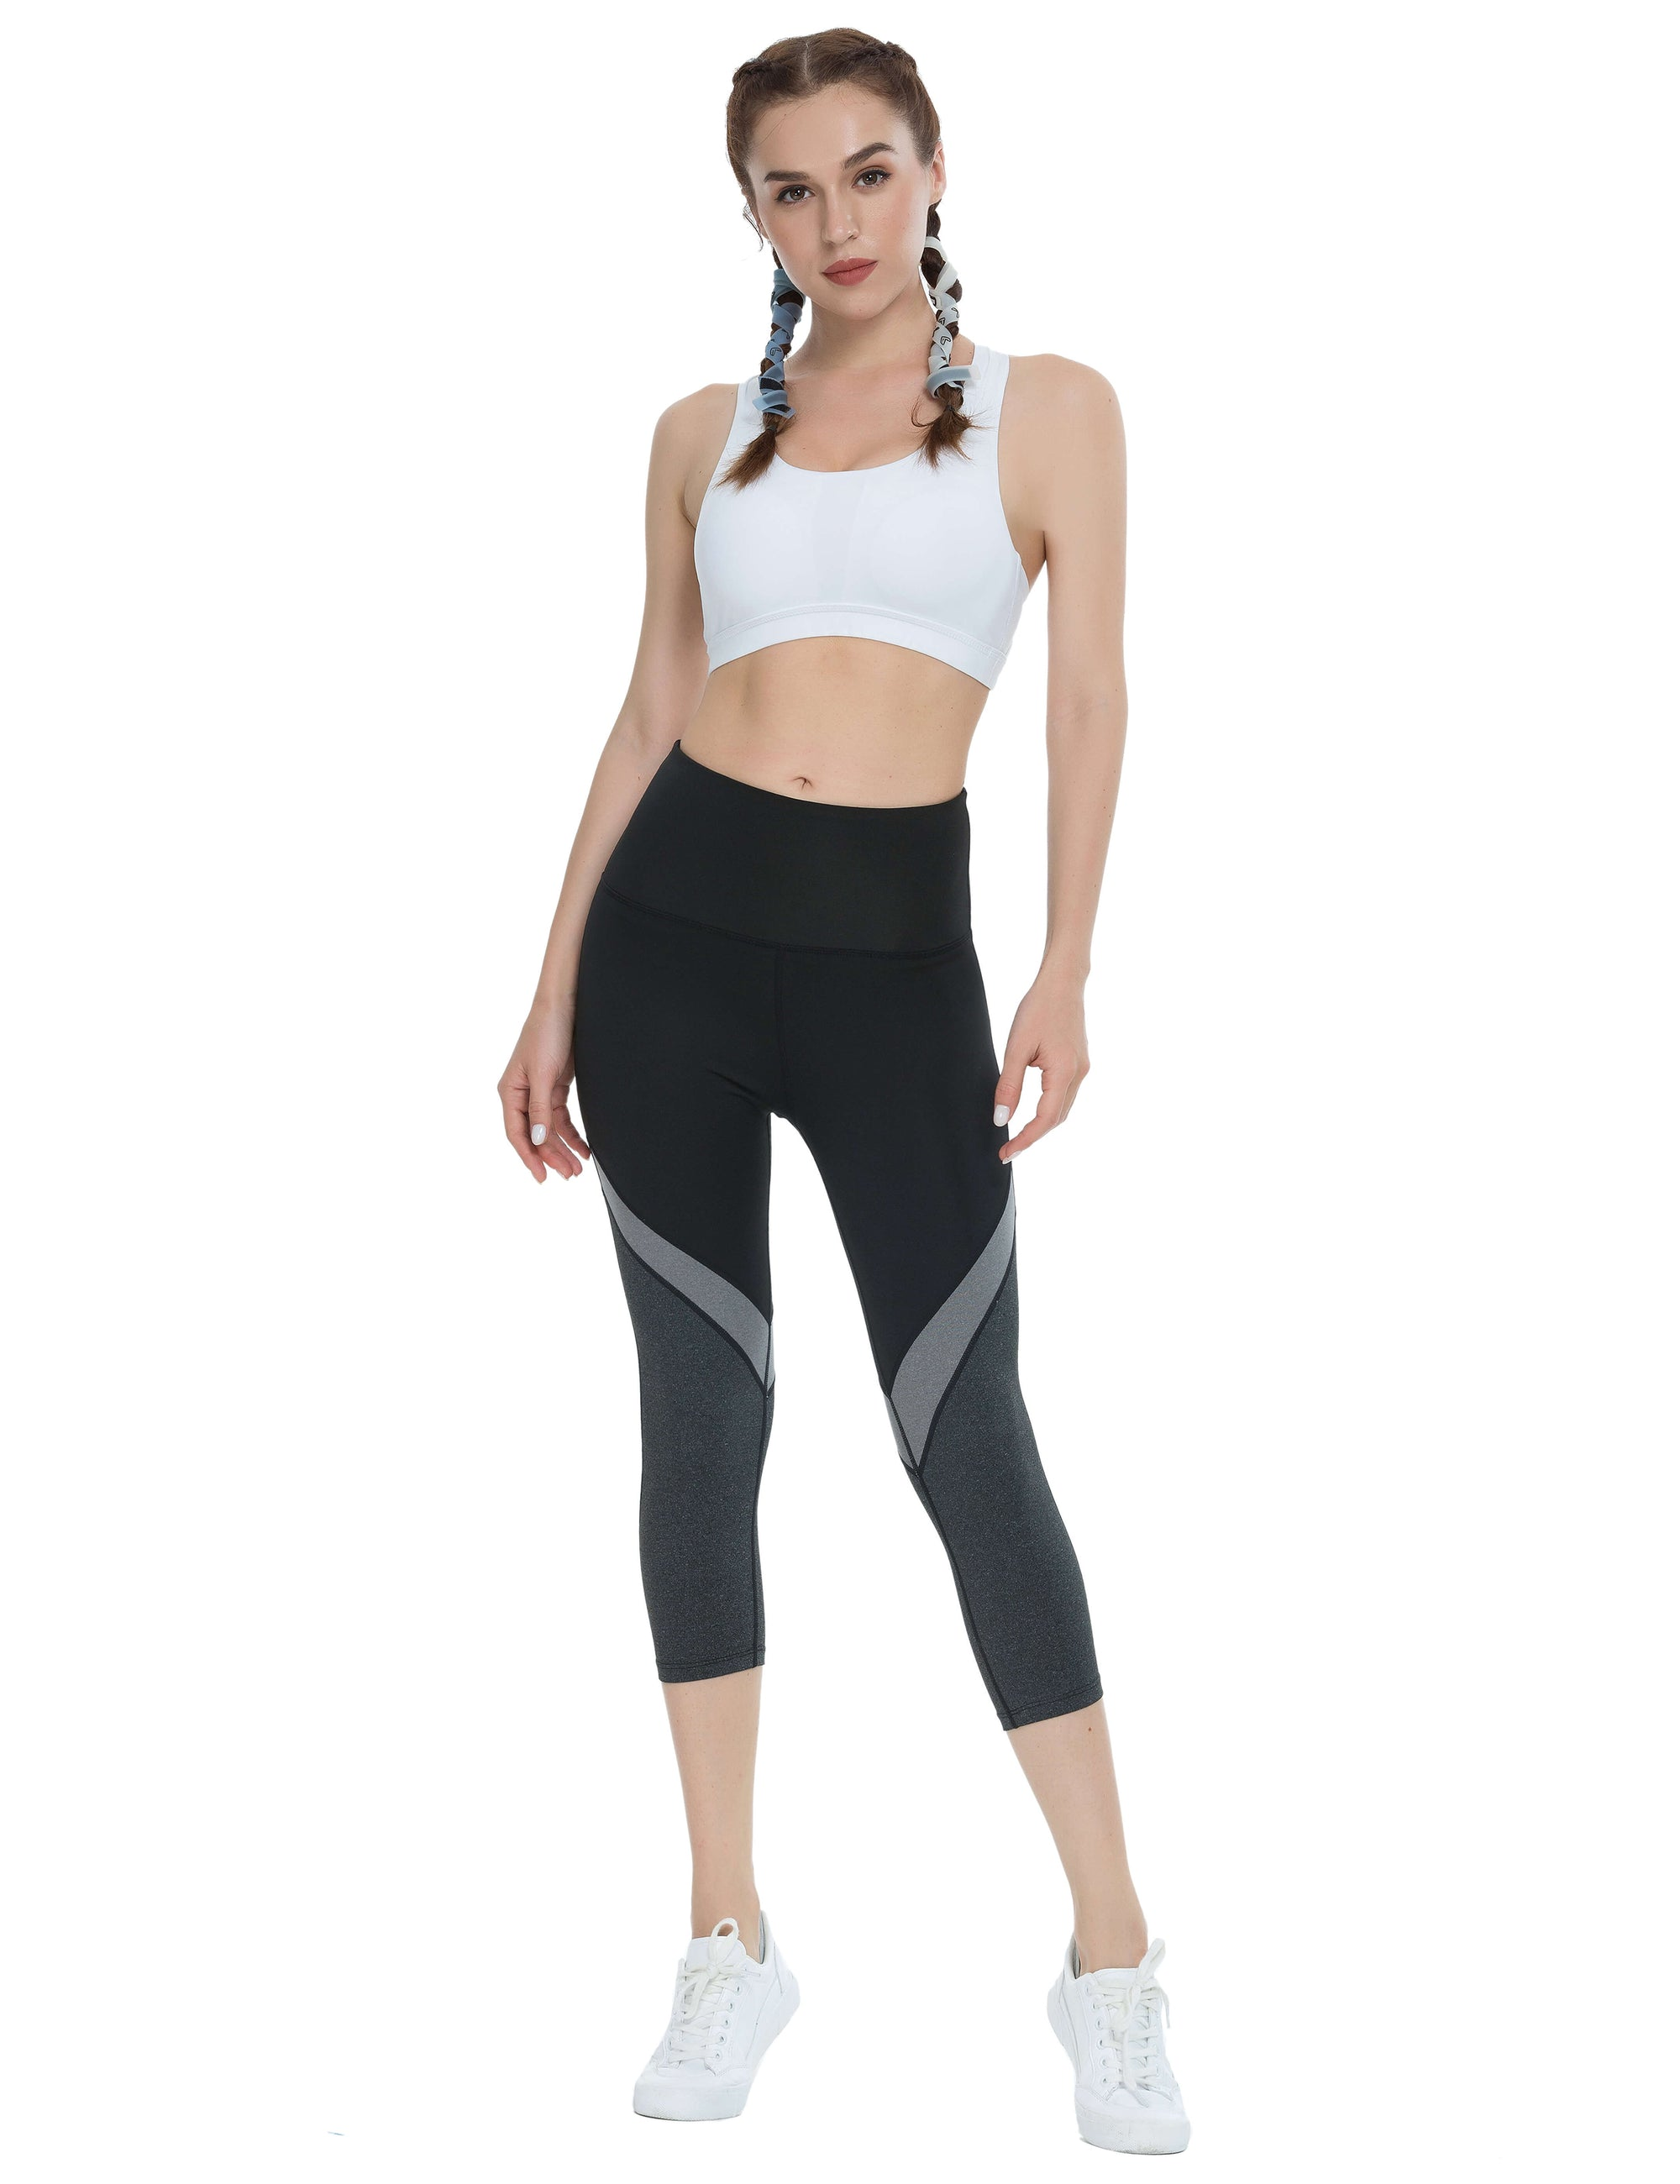 Blooming Jelly_Color Block High Waisted Capri Leggings_Contrast Color_257116_21_Women Sportswear High Rise Gym Clothes_Bottoms_Shorts